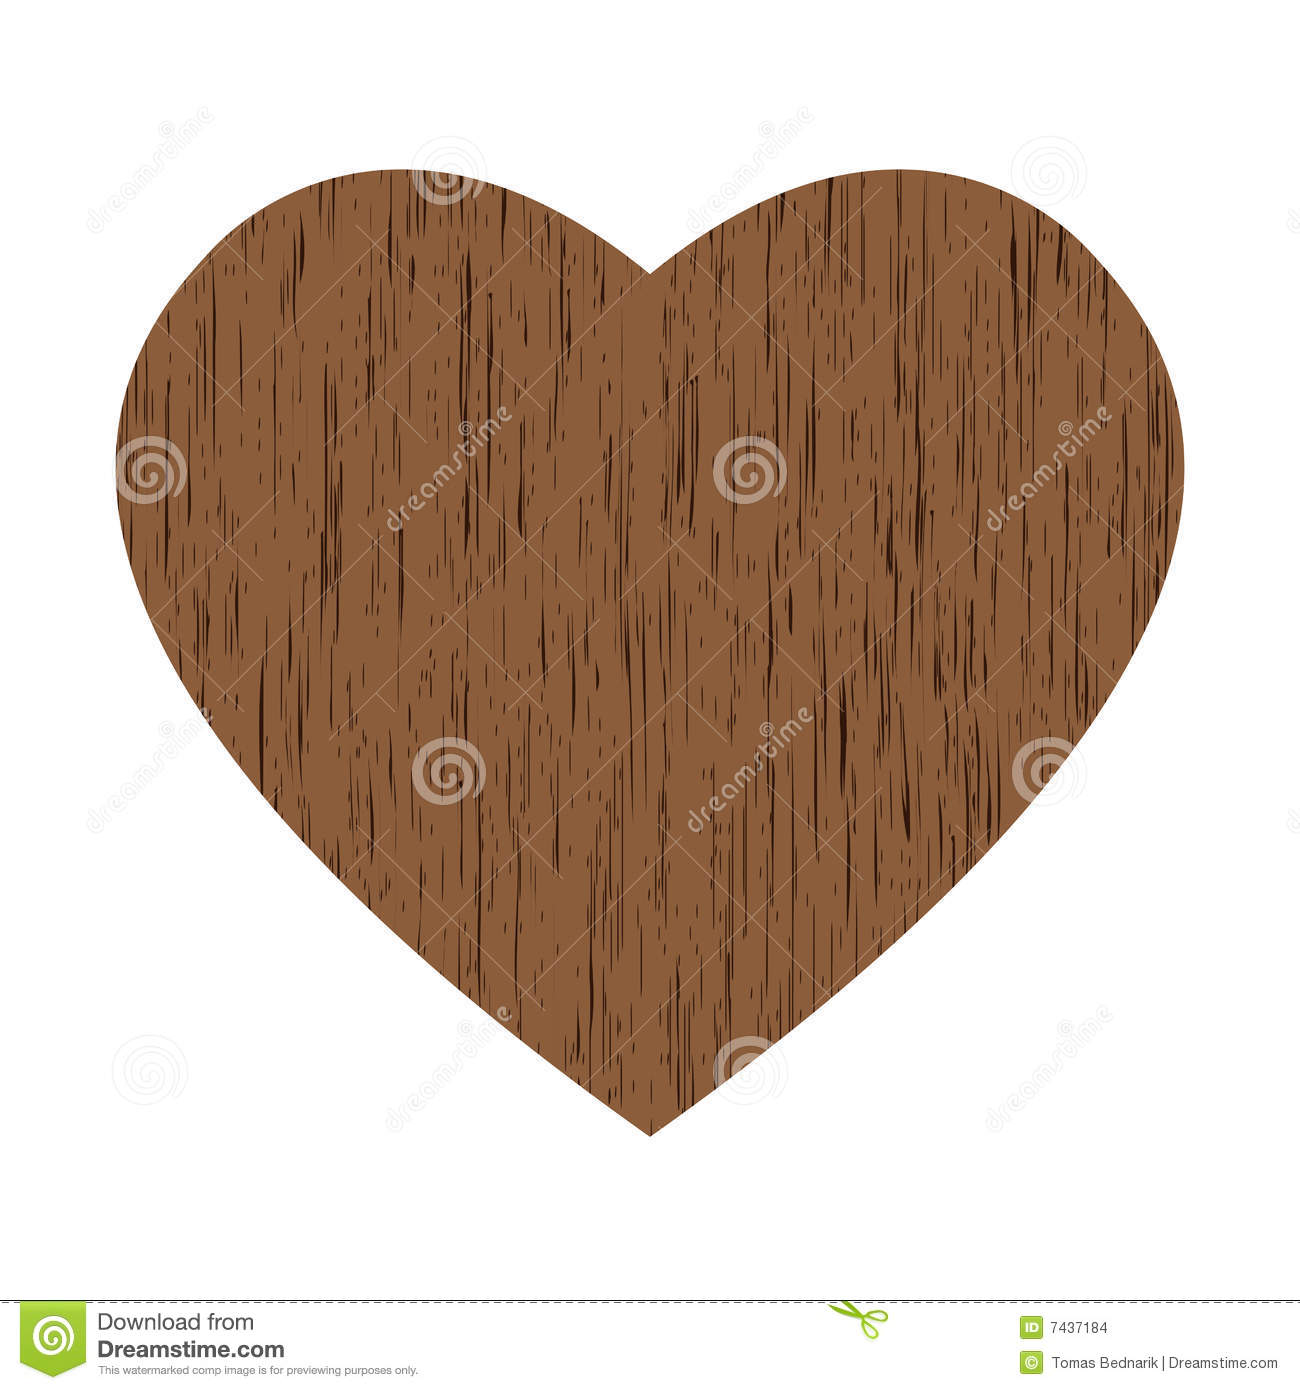 Wooden heart gifts